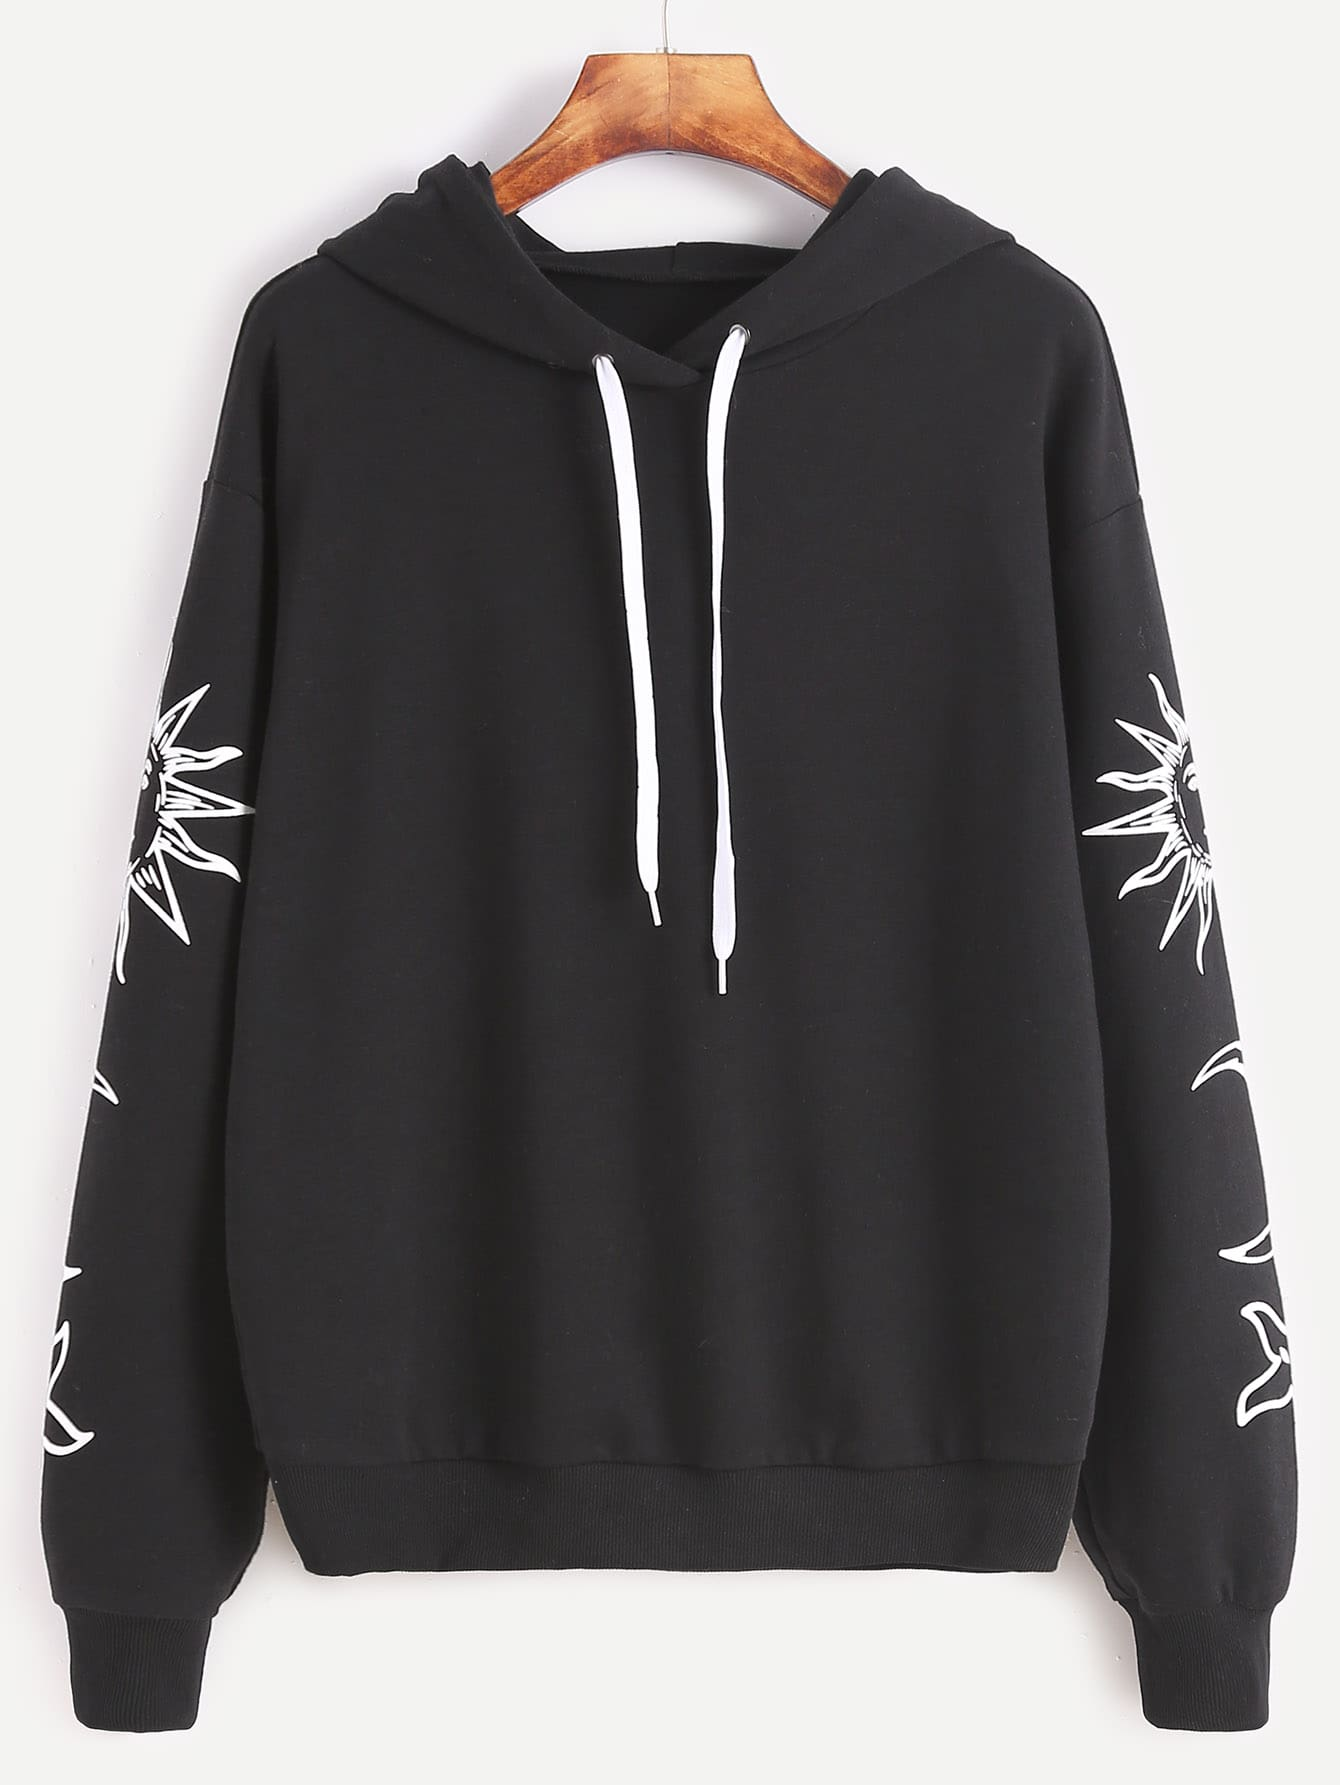 Buy Black Vintage Graphic Print Drop Shoulder Hoodie